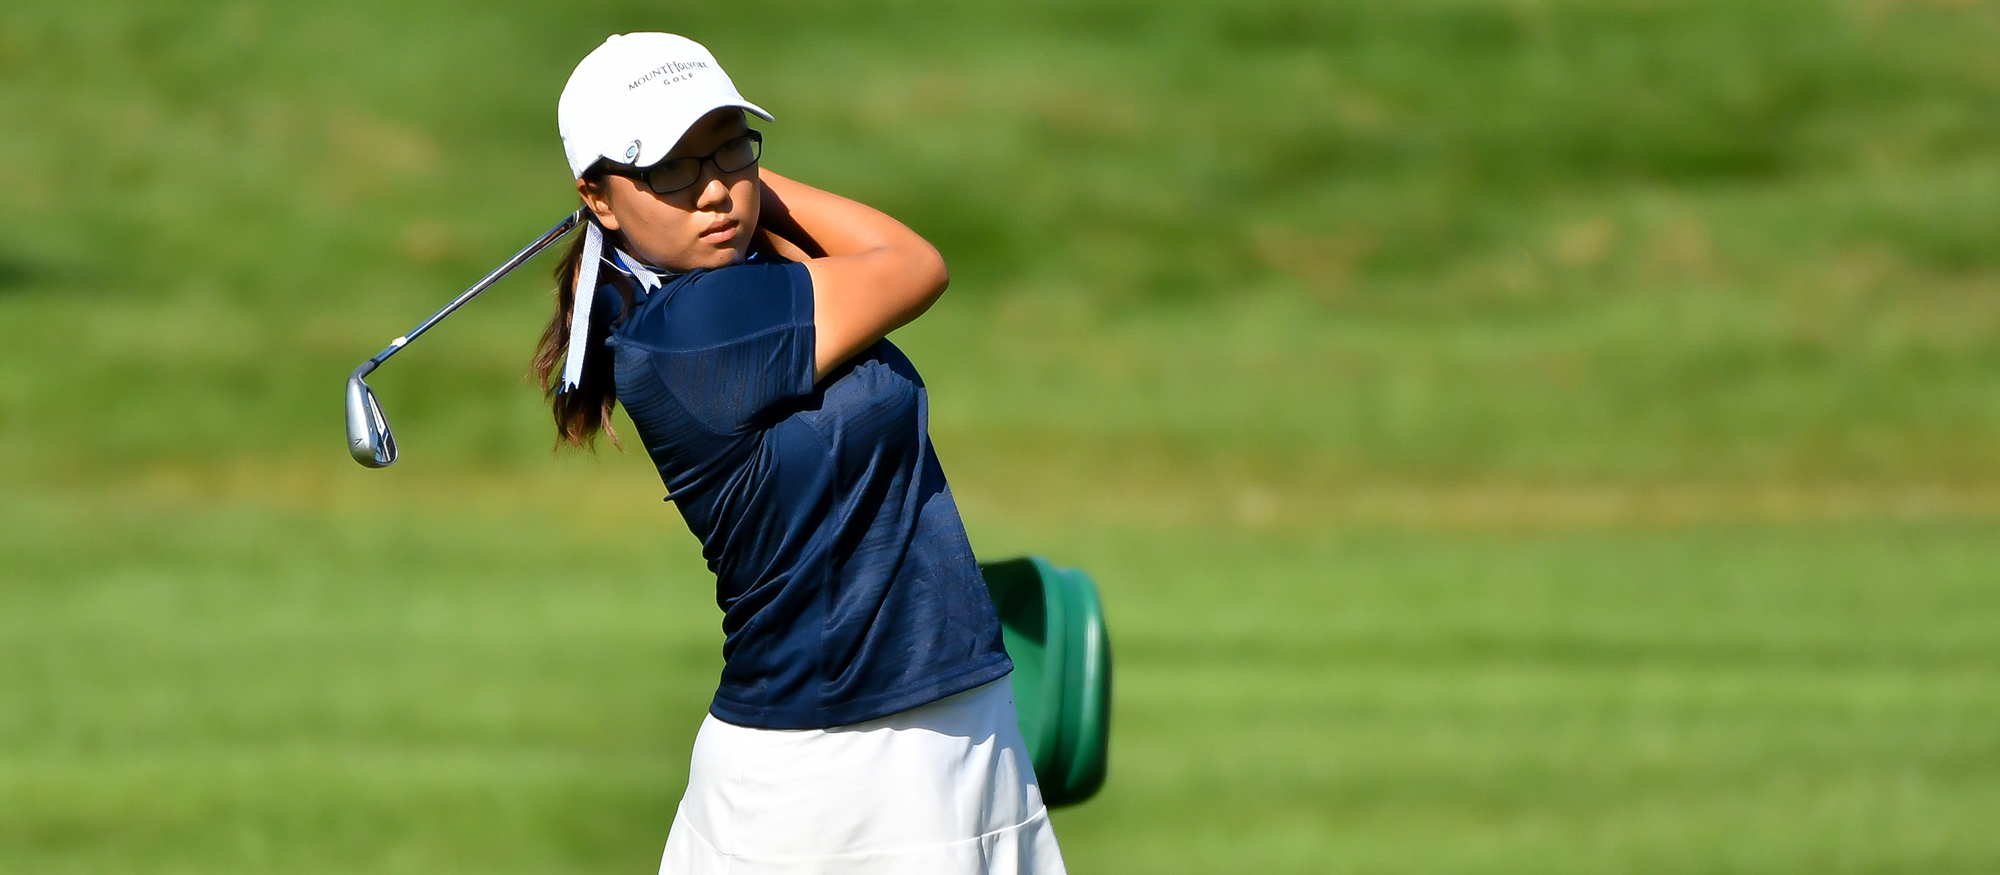 Golf in Fifth After First Day of Ann S. Batchelder Invitational